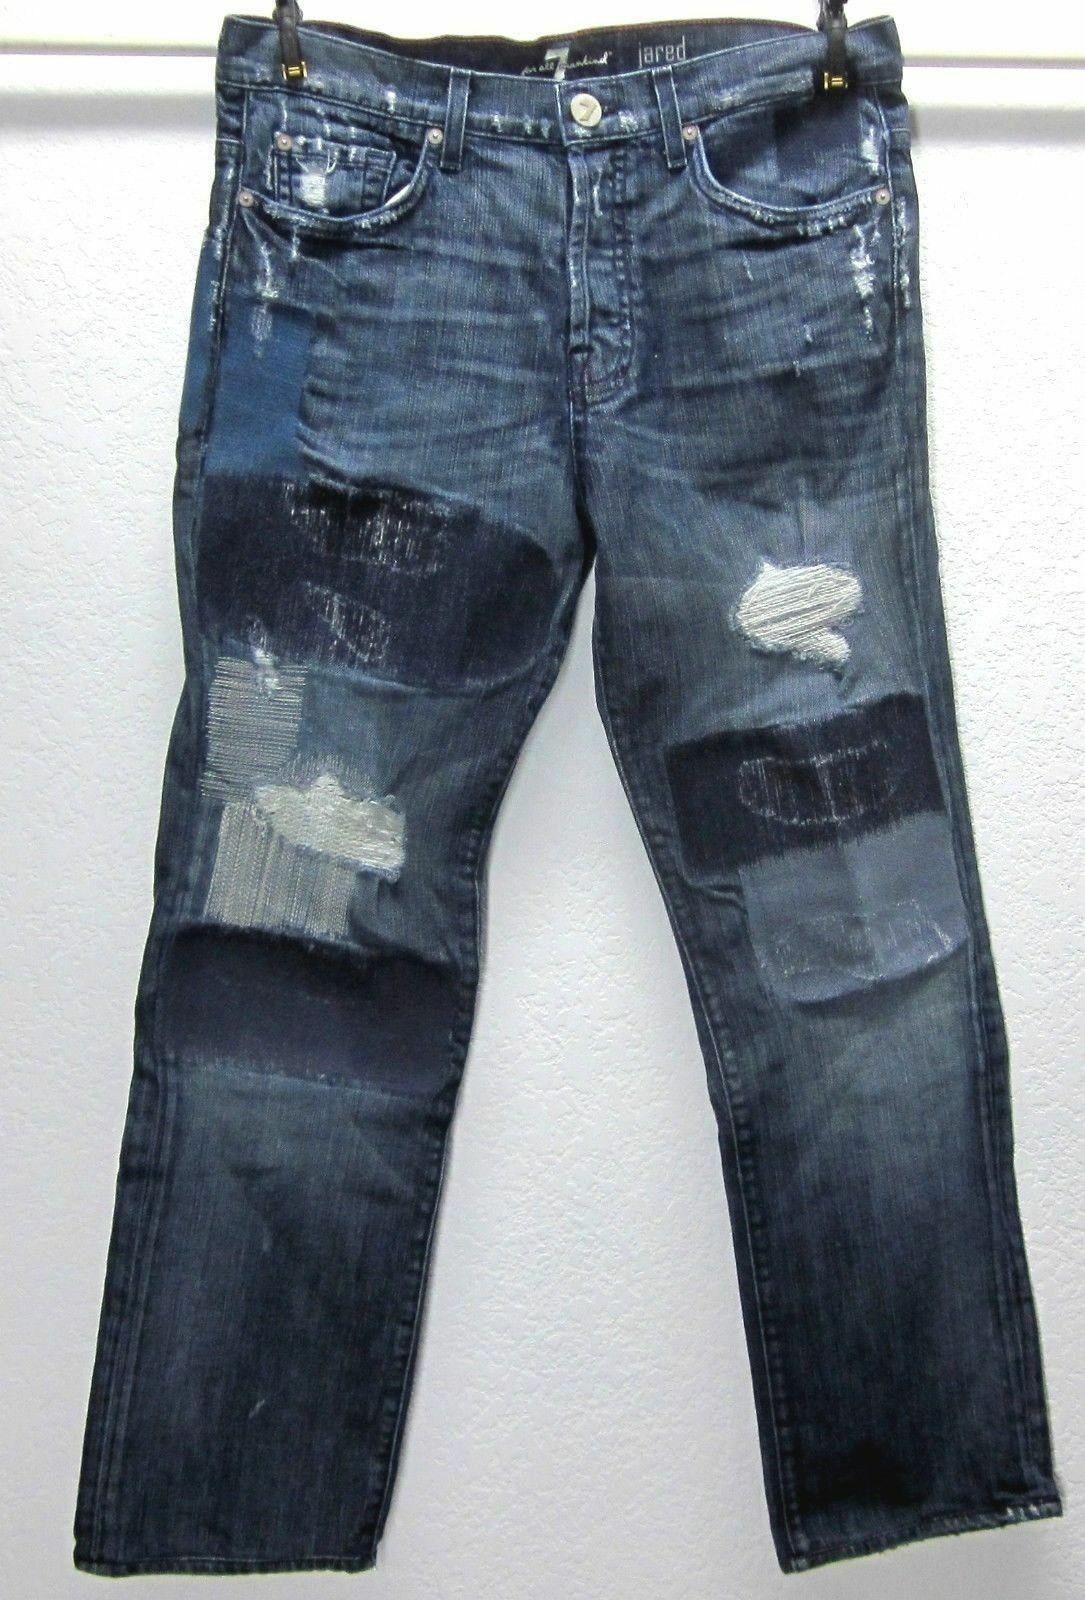 7 For All Mankind JARED Men's Limited Edition  32x30 bluee Jeans  777 EUC